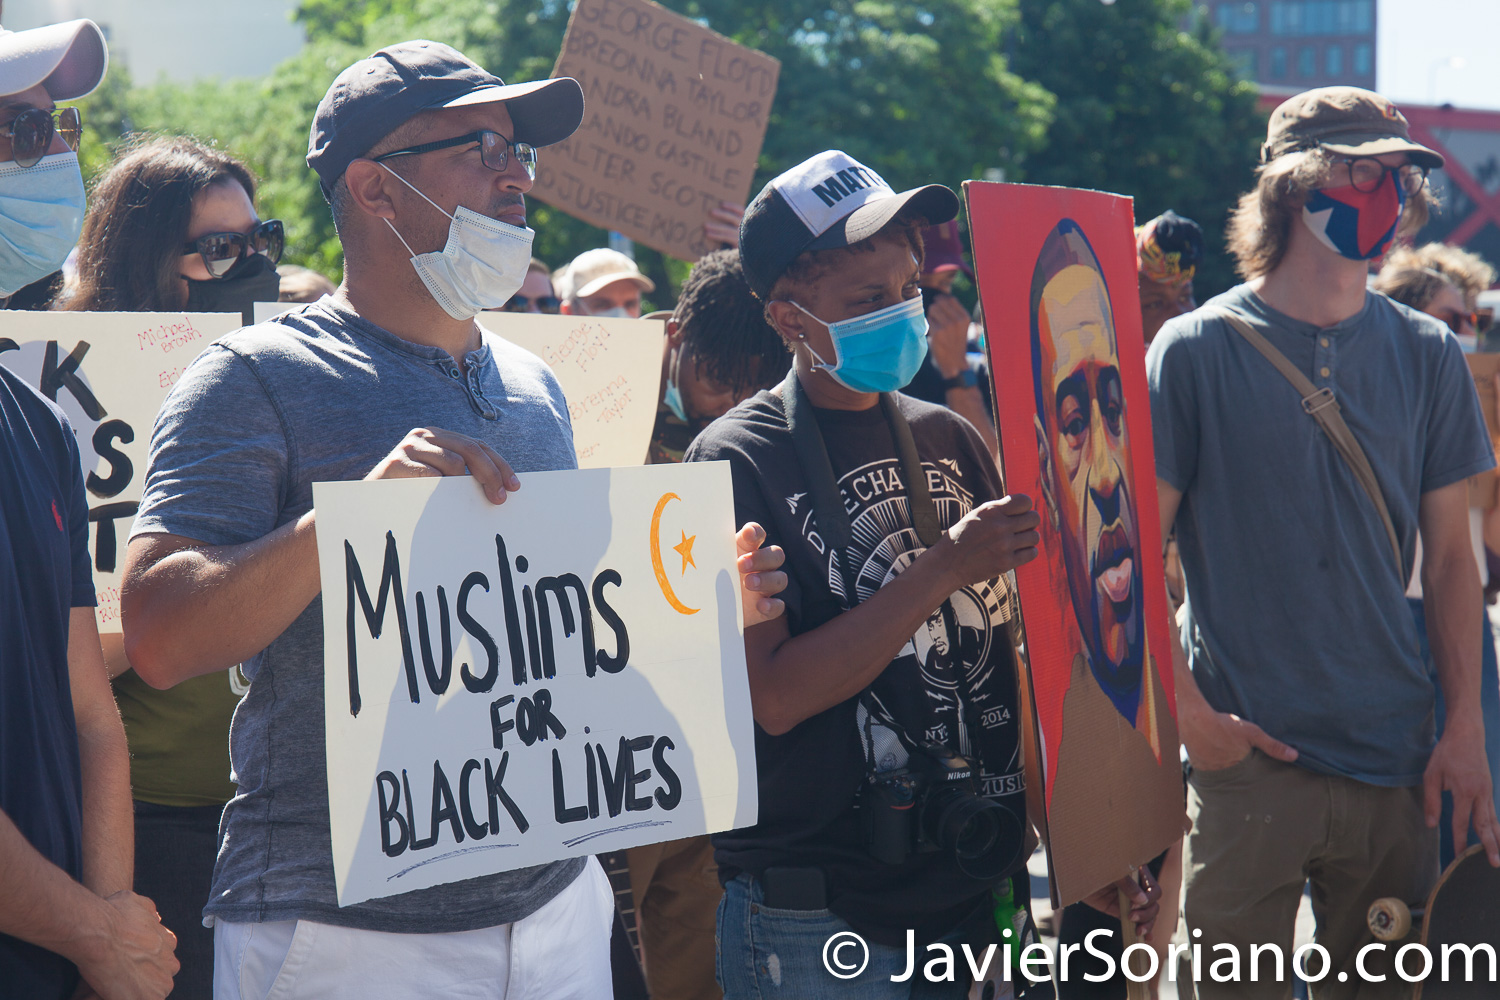 """Saturday, June 13, 2020. Brooklyn, New York City – Protest """"Muslims against racism and police brutality"""" at Barclays Center. Brooklyn, NYC. Photo by Javier Soriano/www.JavierSoriano.com"""